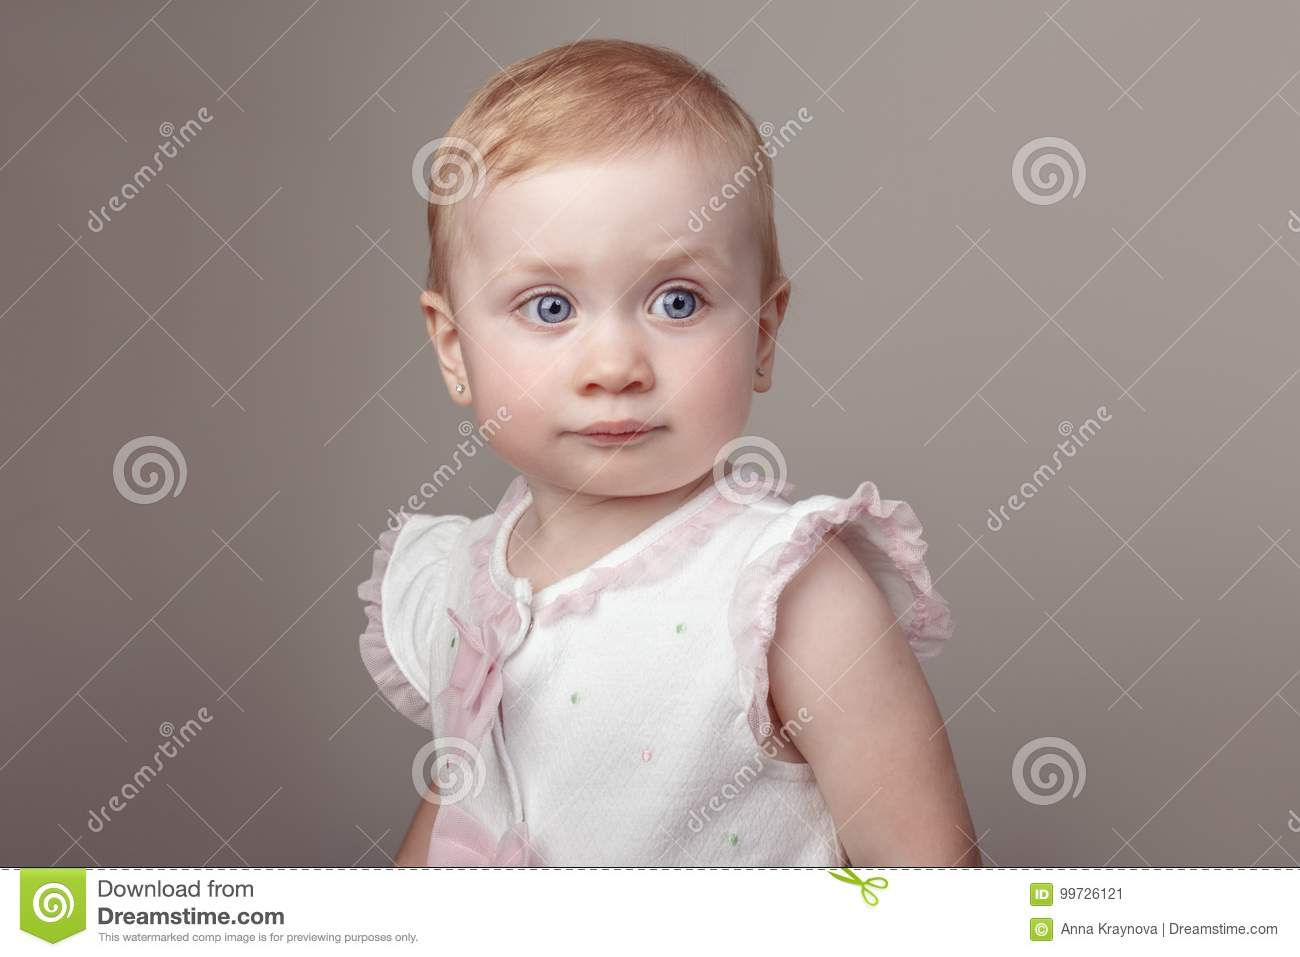 For that blonde blue eyes girl adorable reserve